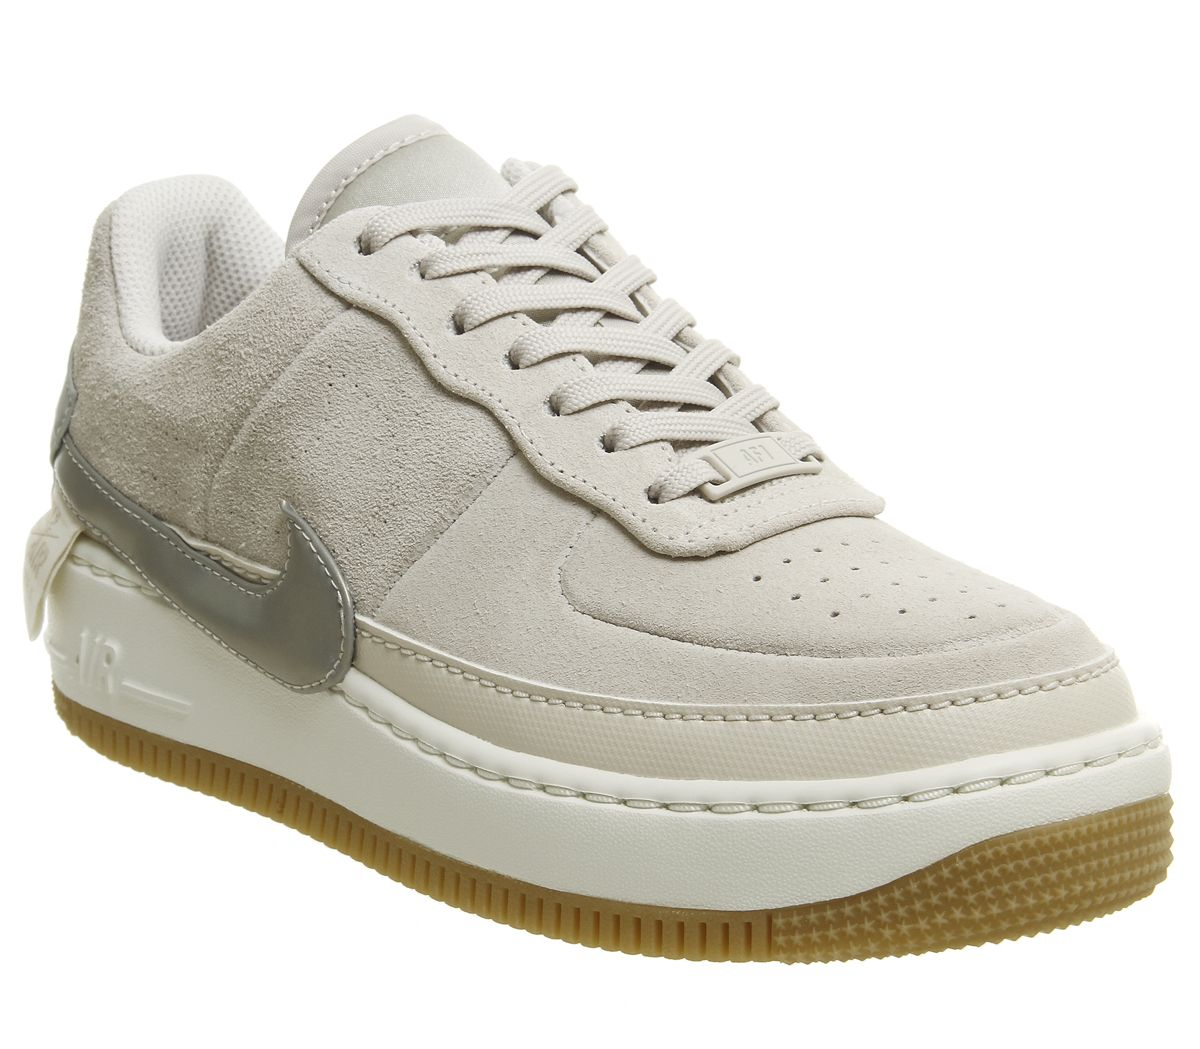 the best attitude 8df77 6e537 Nike Air Force 1 Jester Trainers Desert Sand - Hers trainers